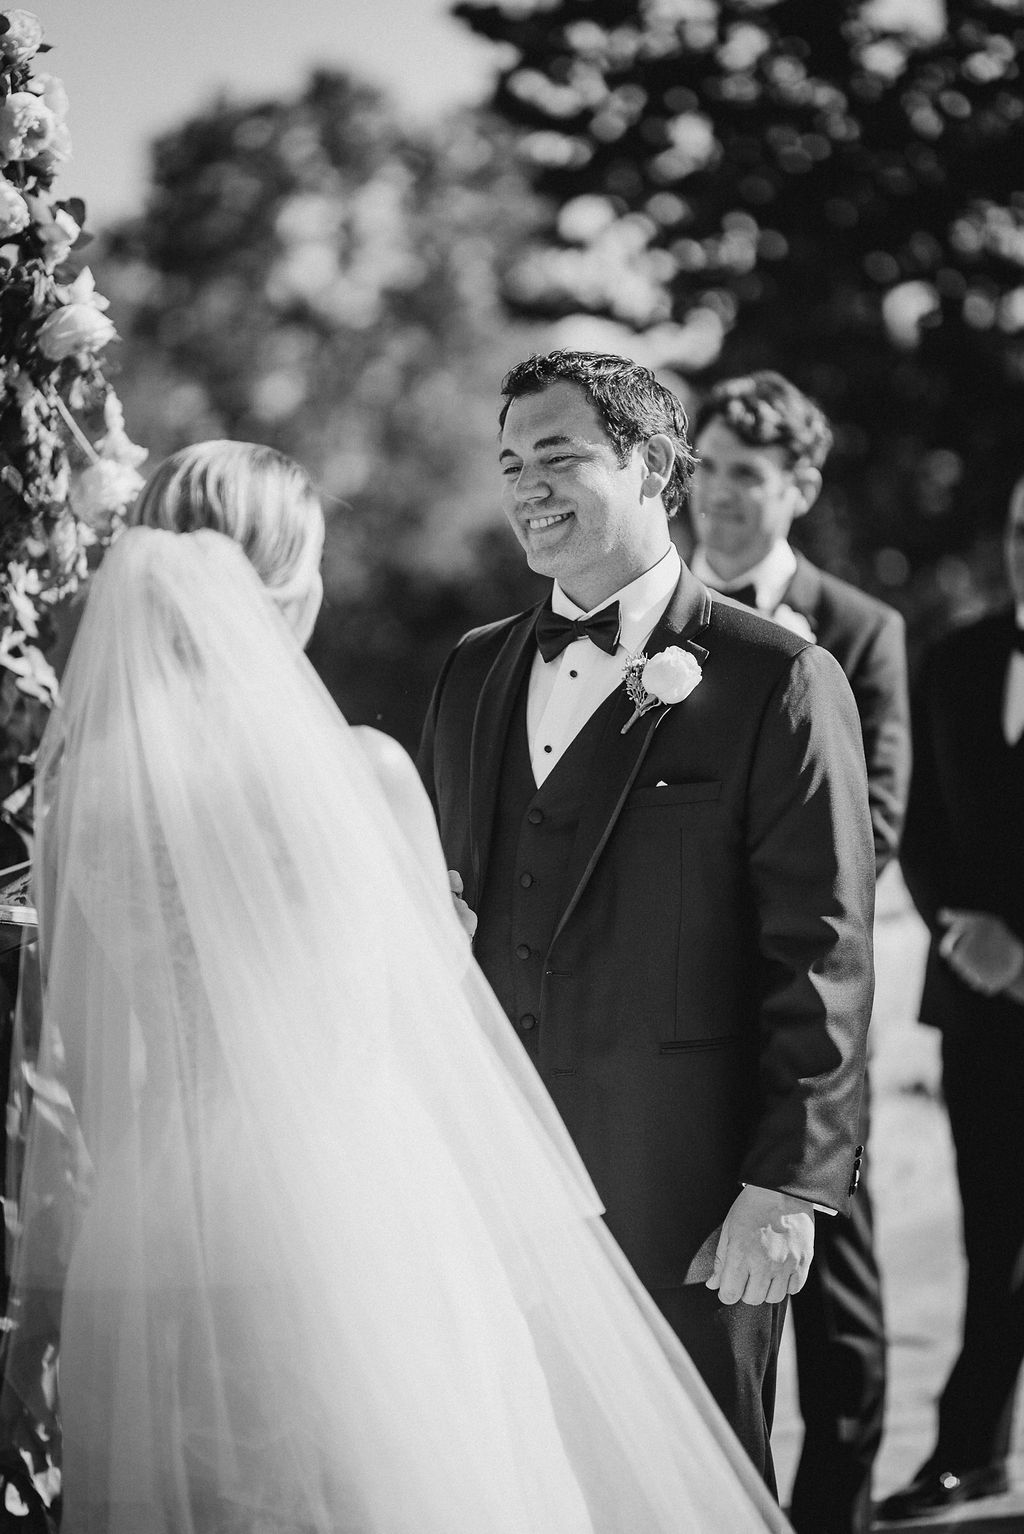 Groom Smiling at the Bride at the Alter at Bluemont Vineyard